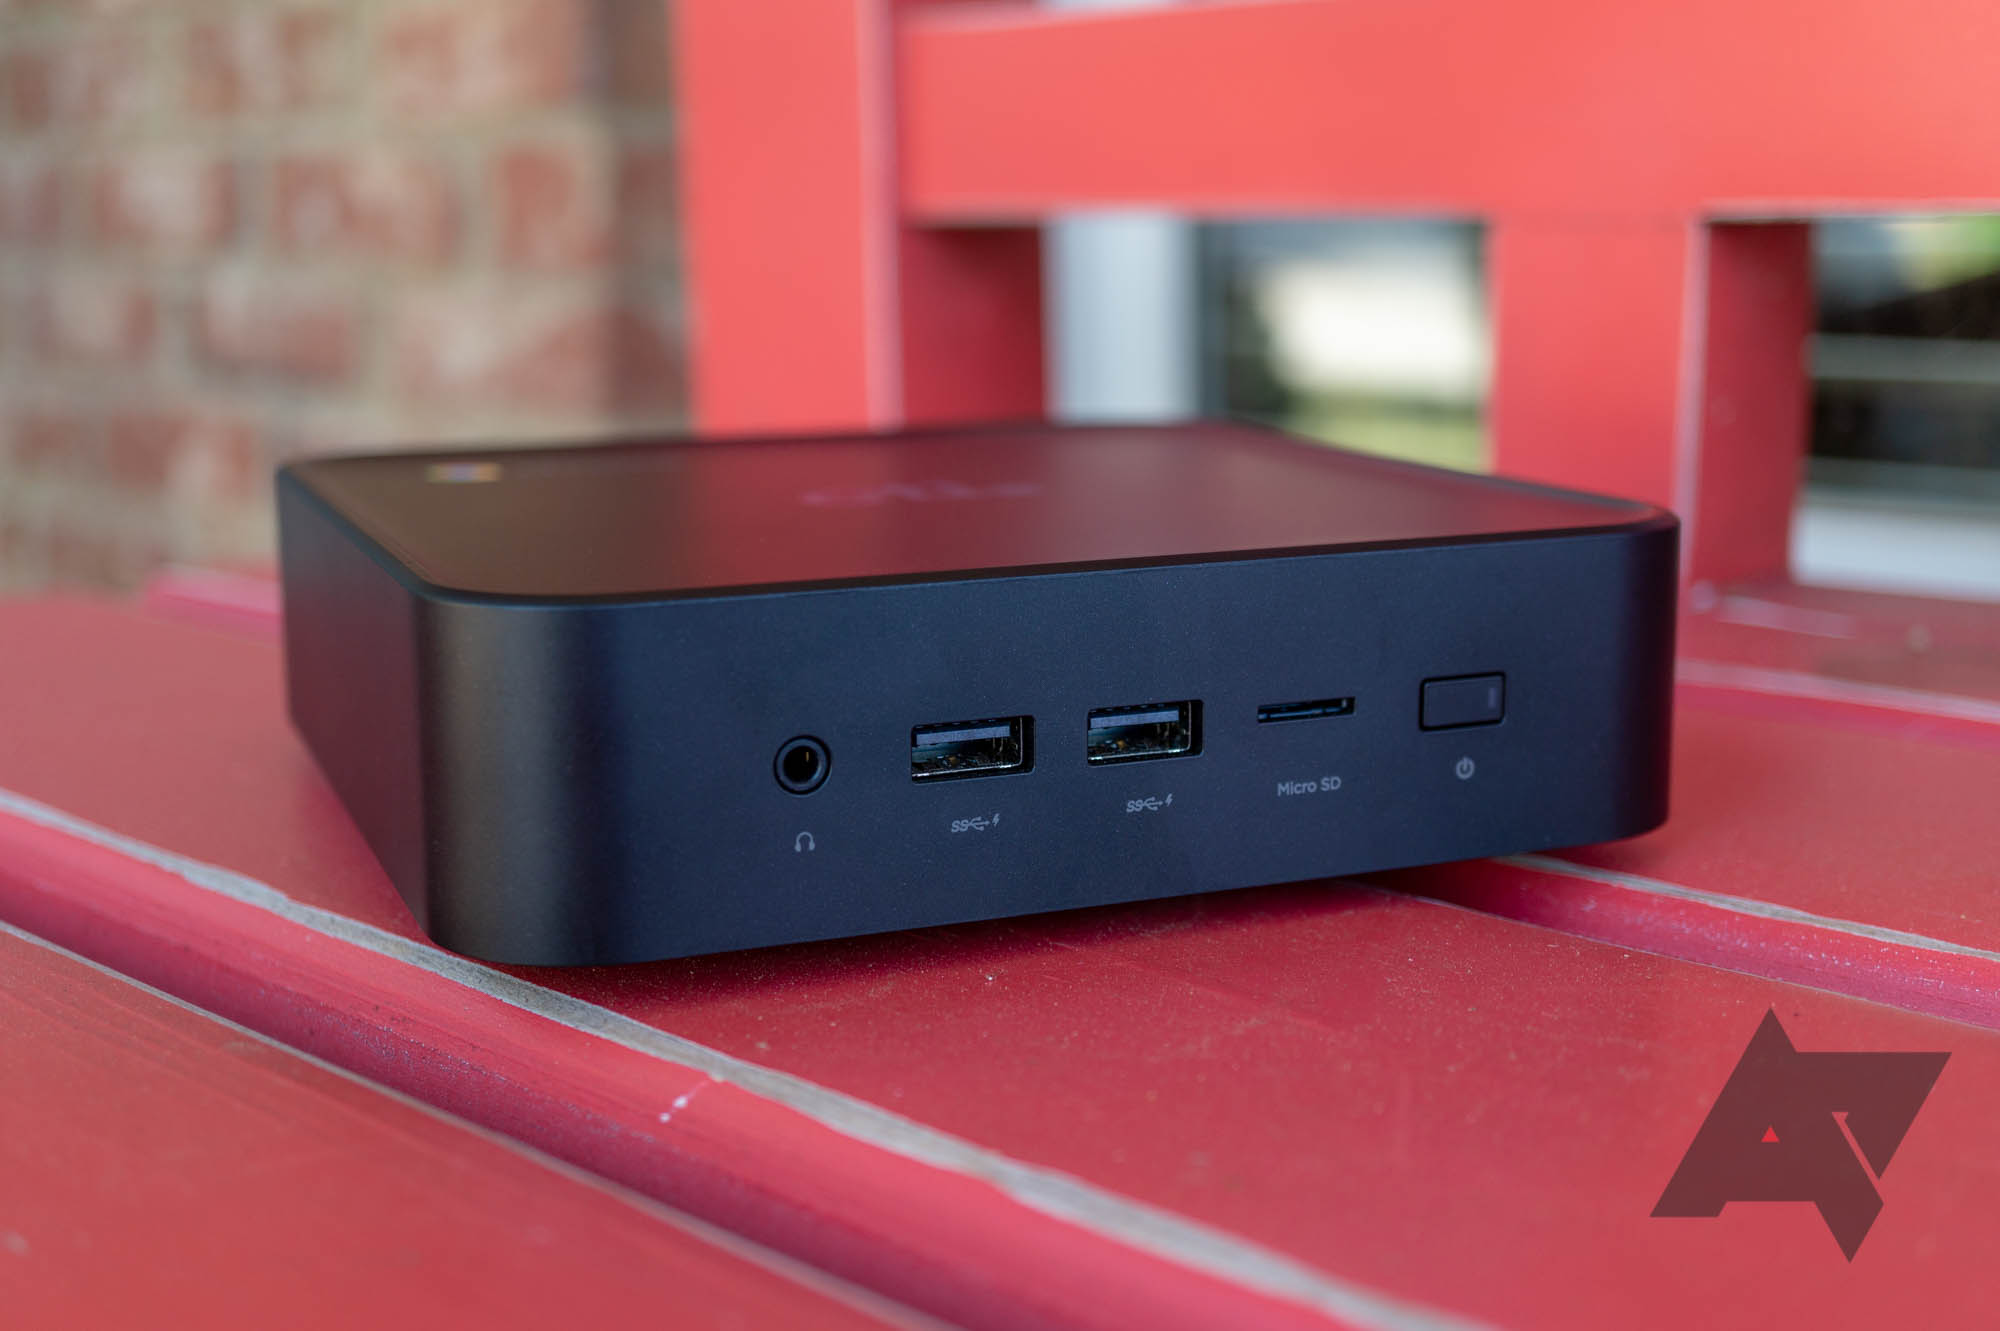 CTL Chromebox CBx1 review: A good Chrome OS desktop at a